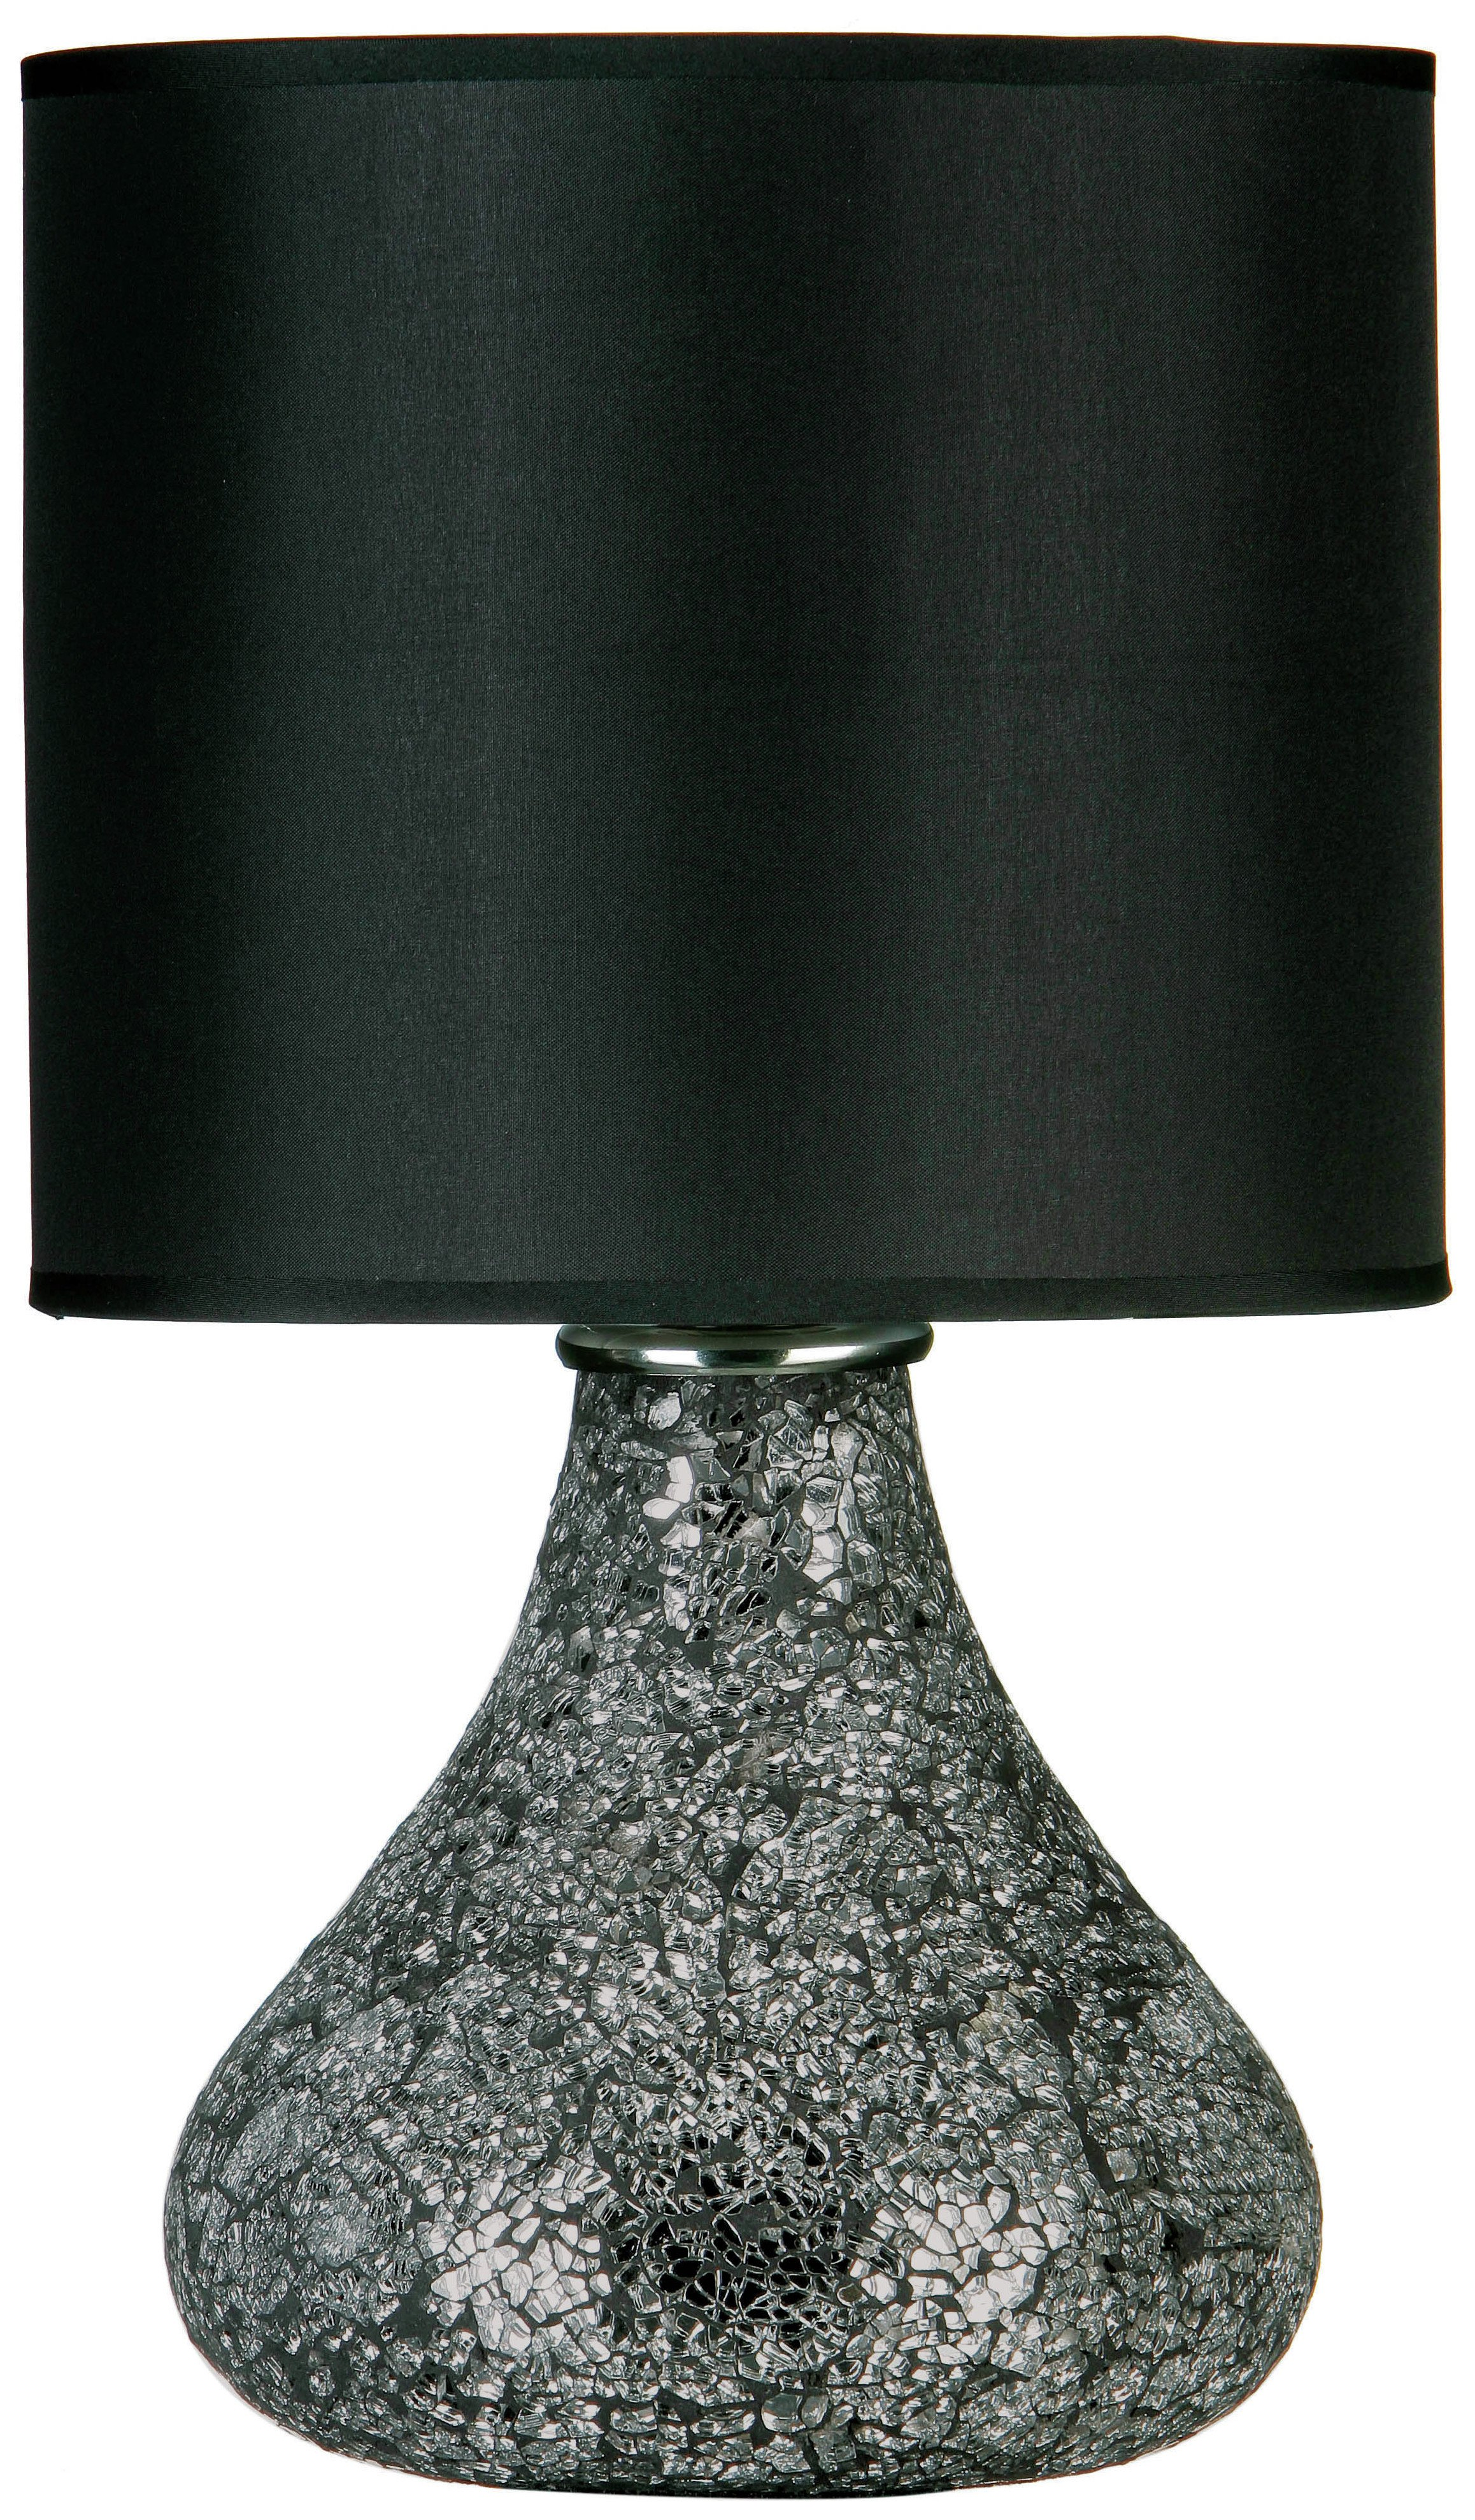 Image of Opulence Mosaic Base Table Lamp with Black Shade.